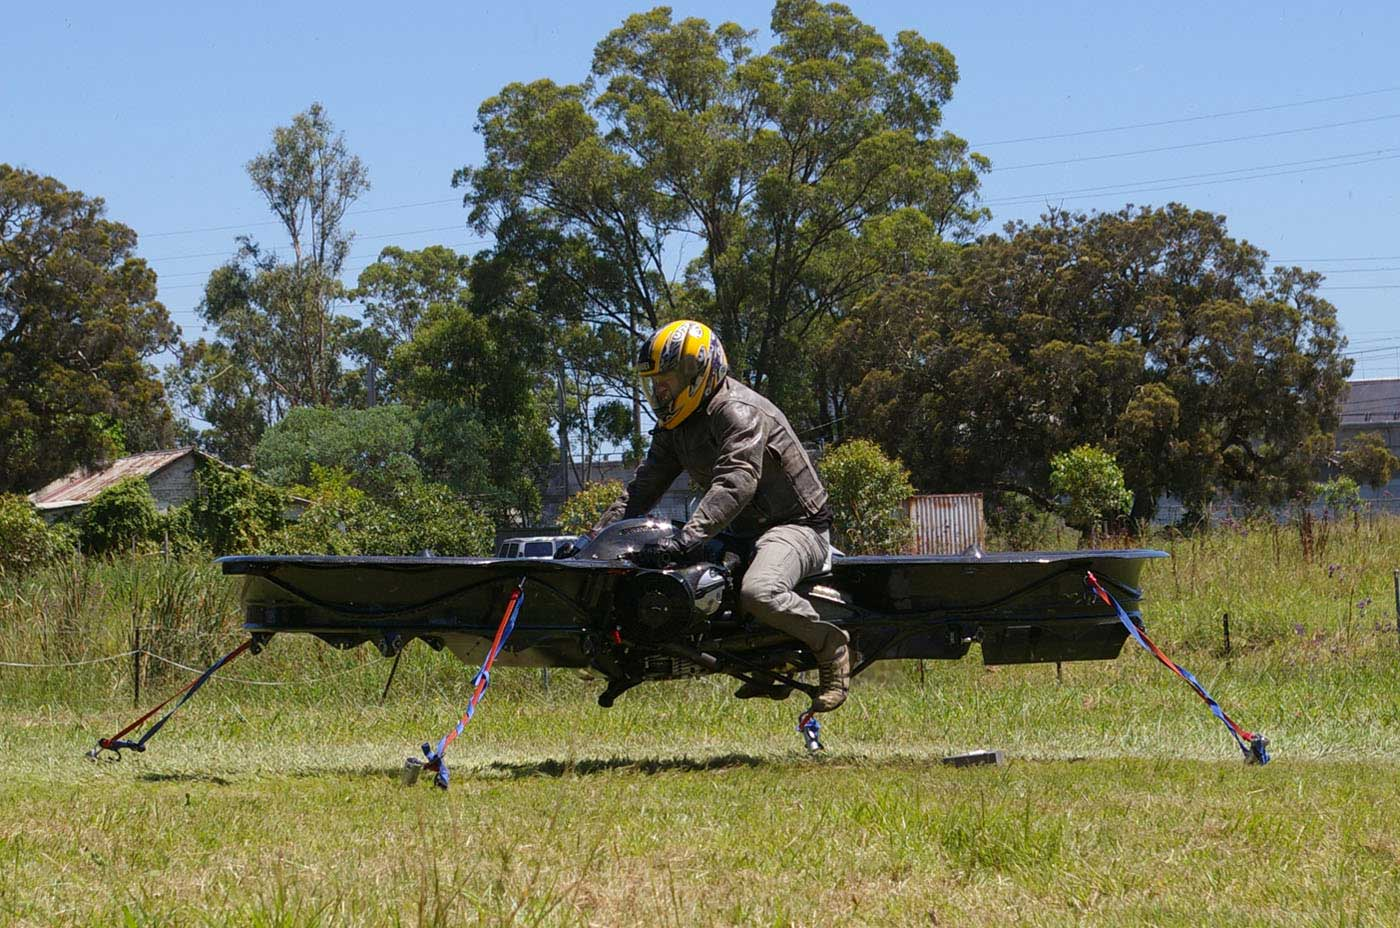 Hoverbike P2